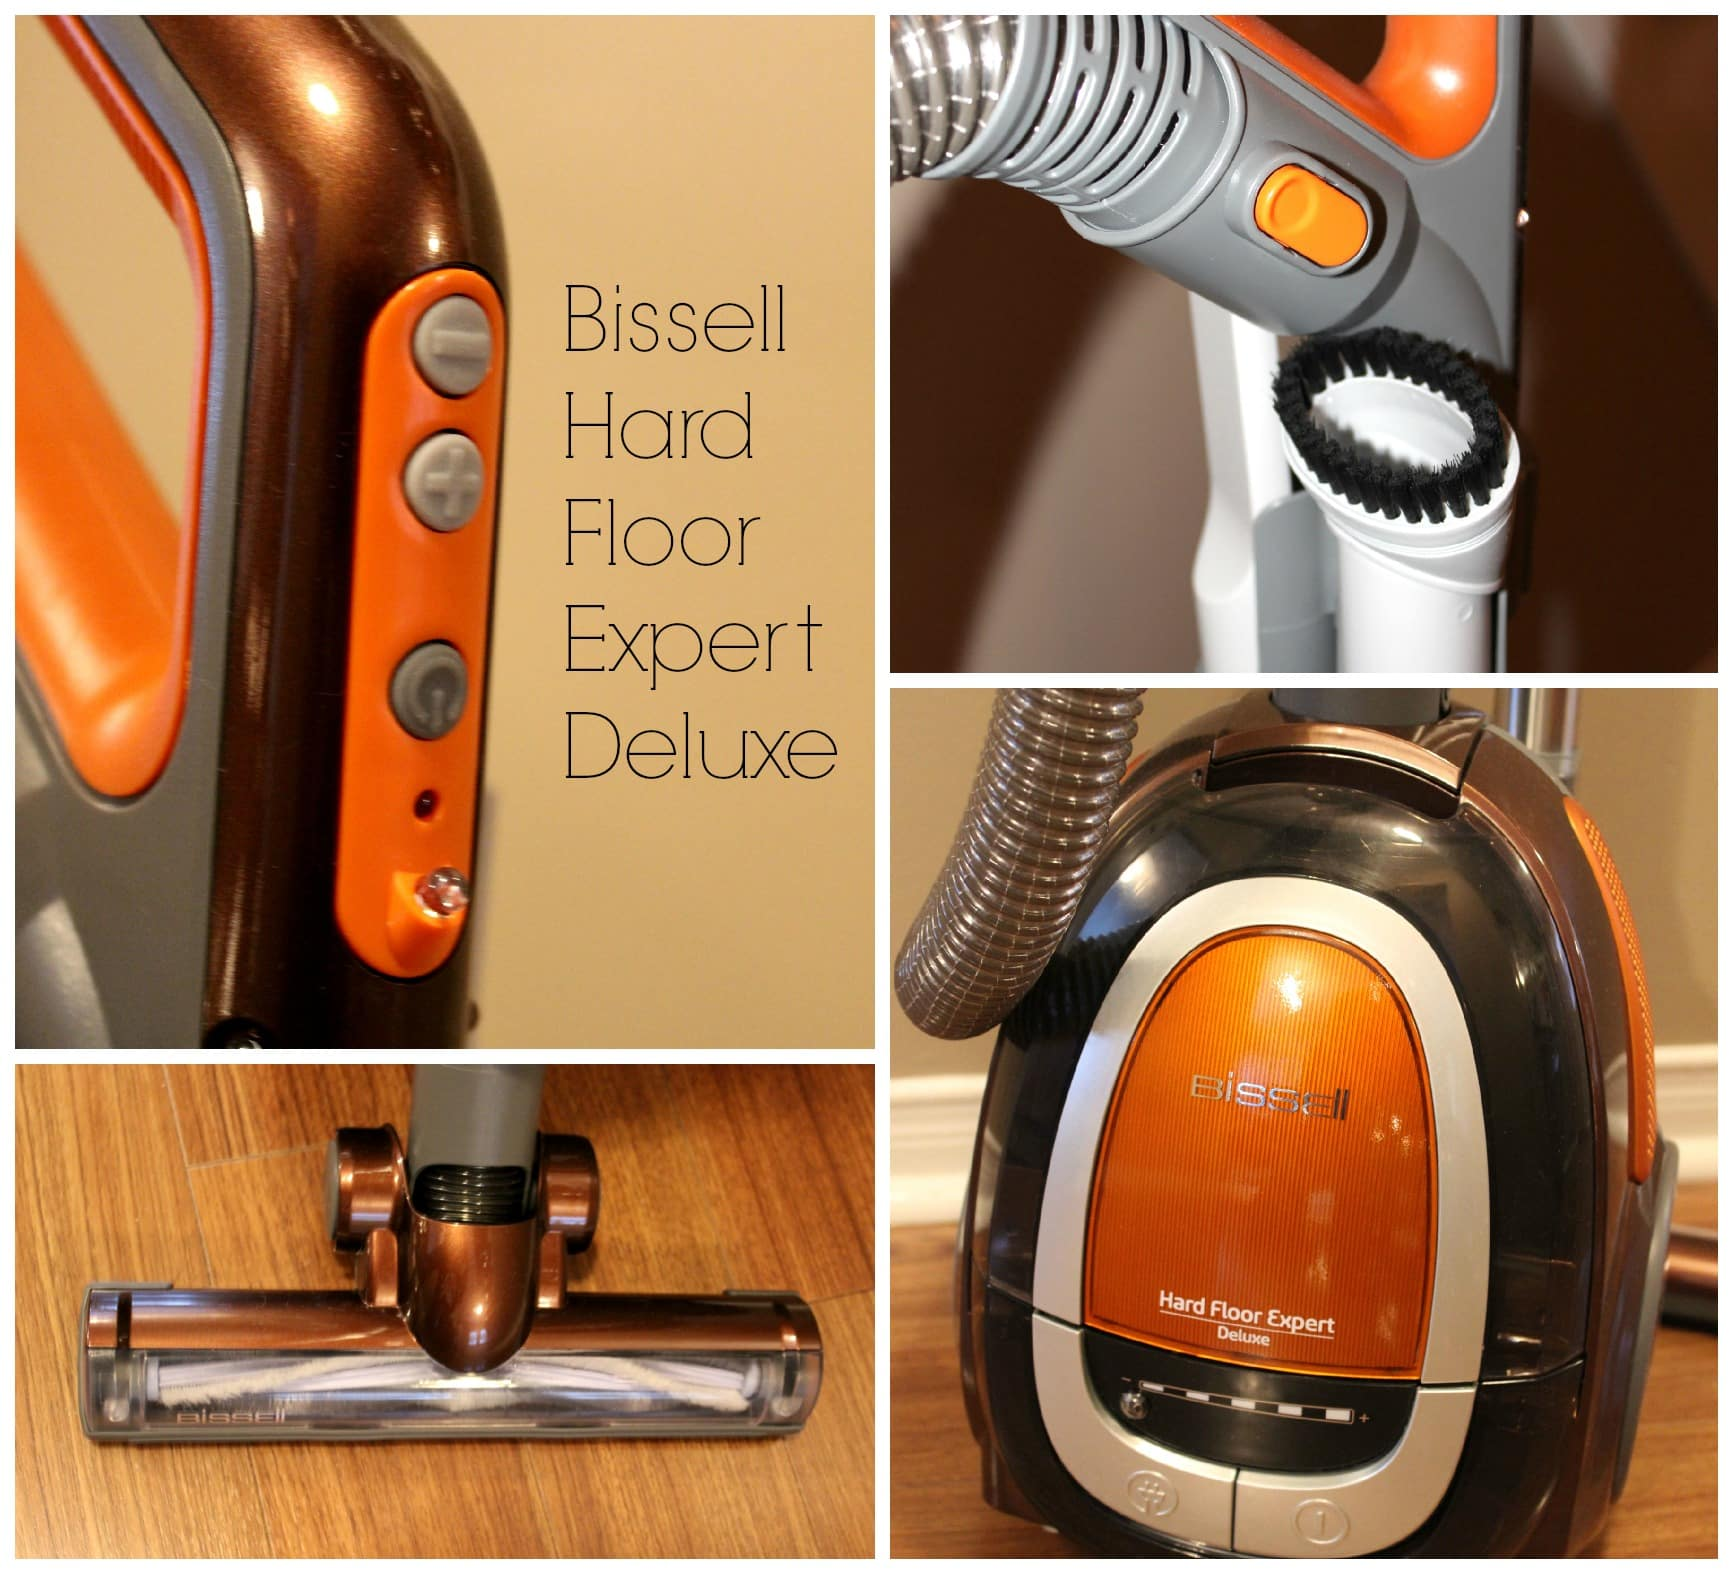 Captivating Features I Loved About The Bissell Hard Floor Expert Deluxe Were The Speed  Controls On The Handle, The Handy Cord Retract, The Cool Rootbeer And  Orange ...